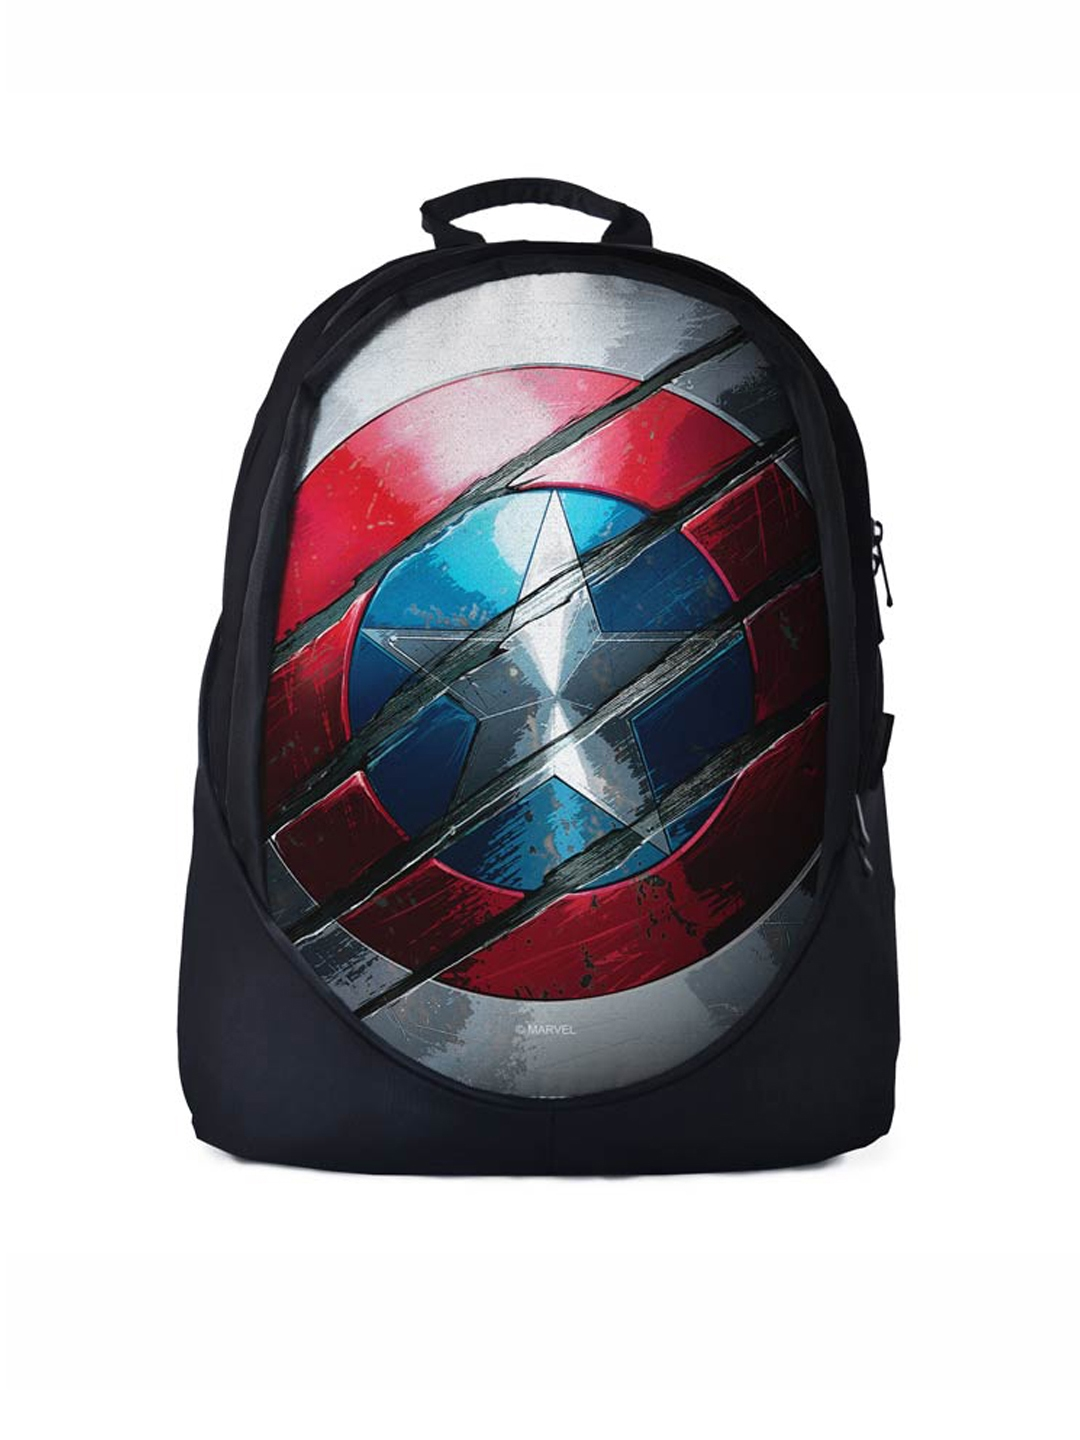 79ffd247d8ce The Souled Store Unisex Black Avengers  Captain America Shield Print  Backpack